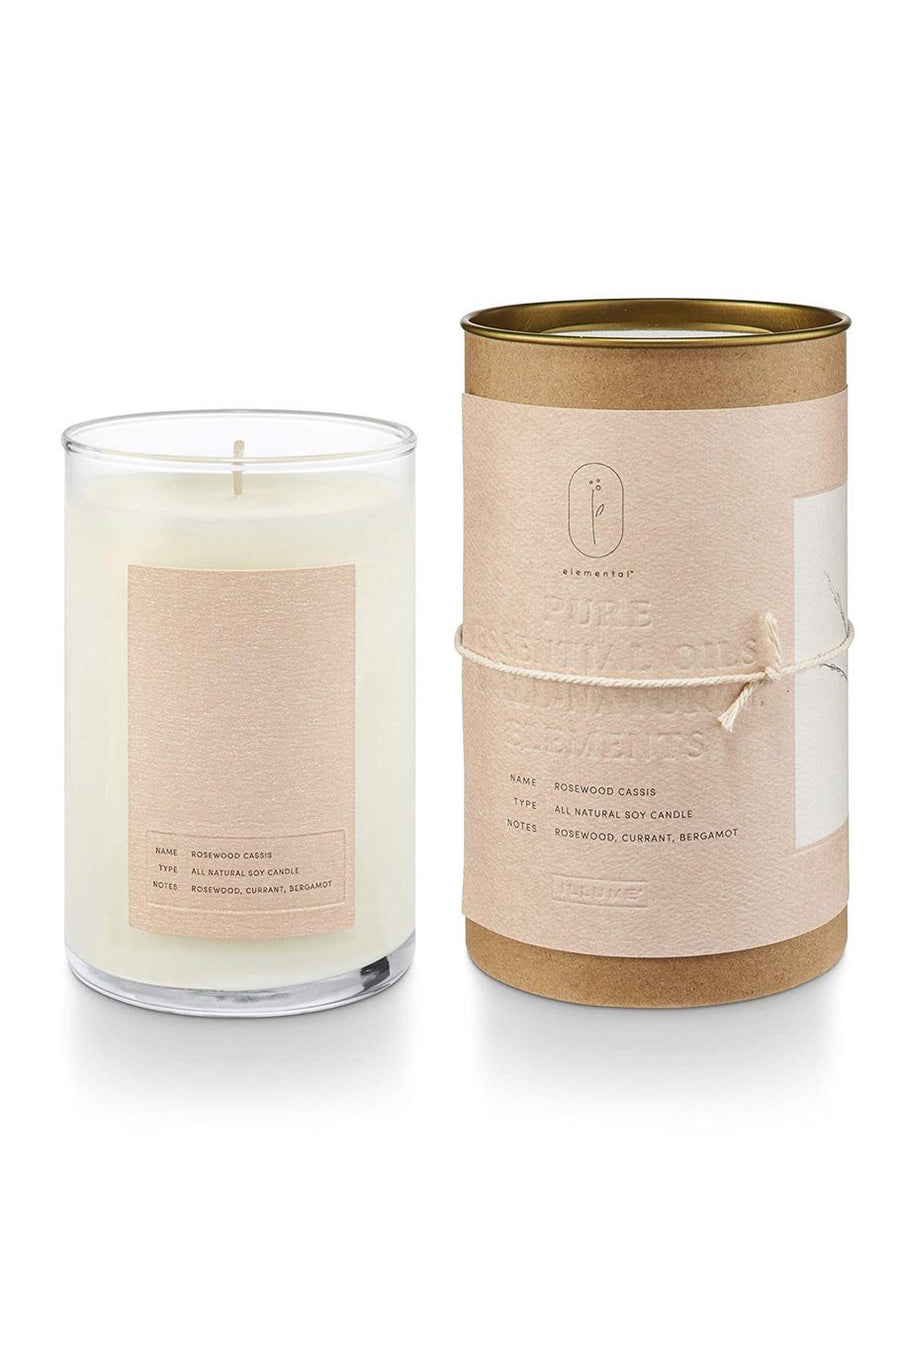 Illume Rosewood Soy Candle - Shore